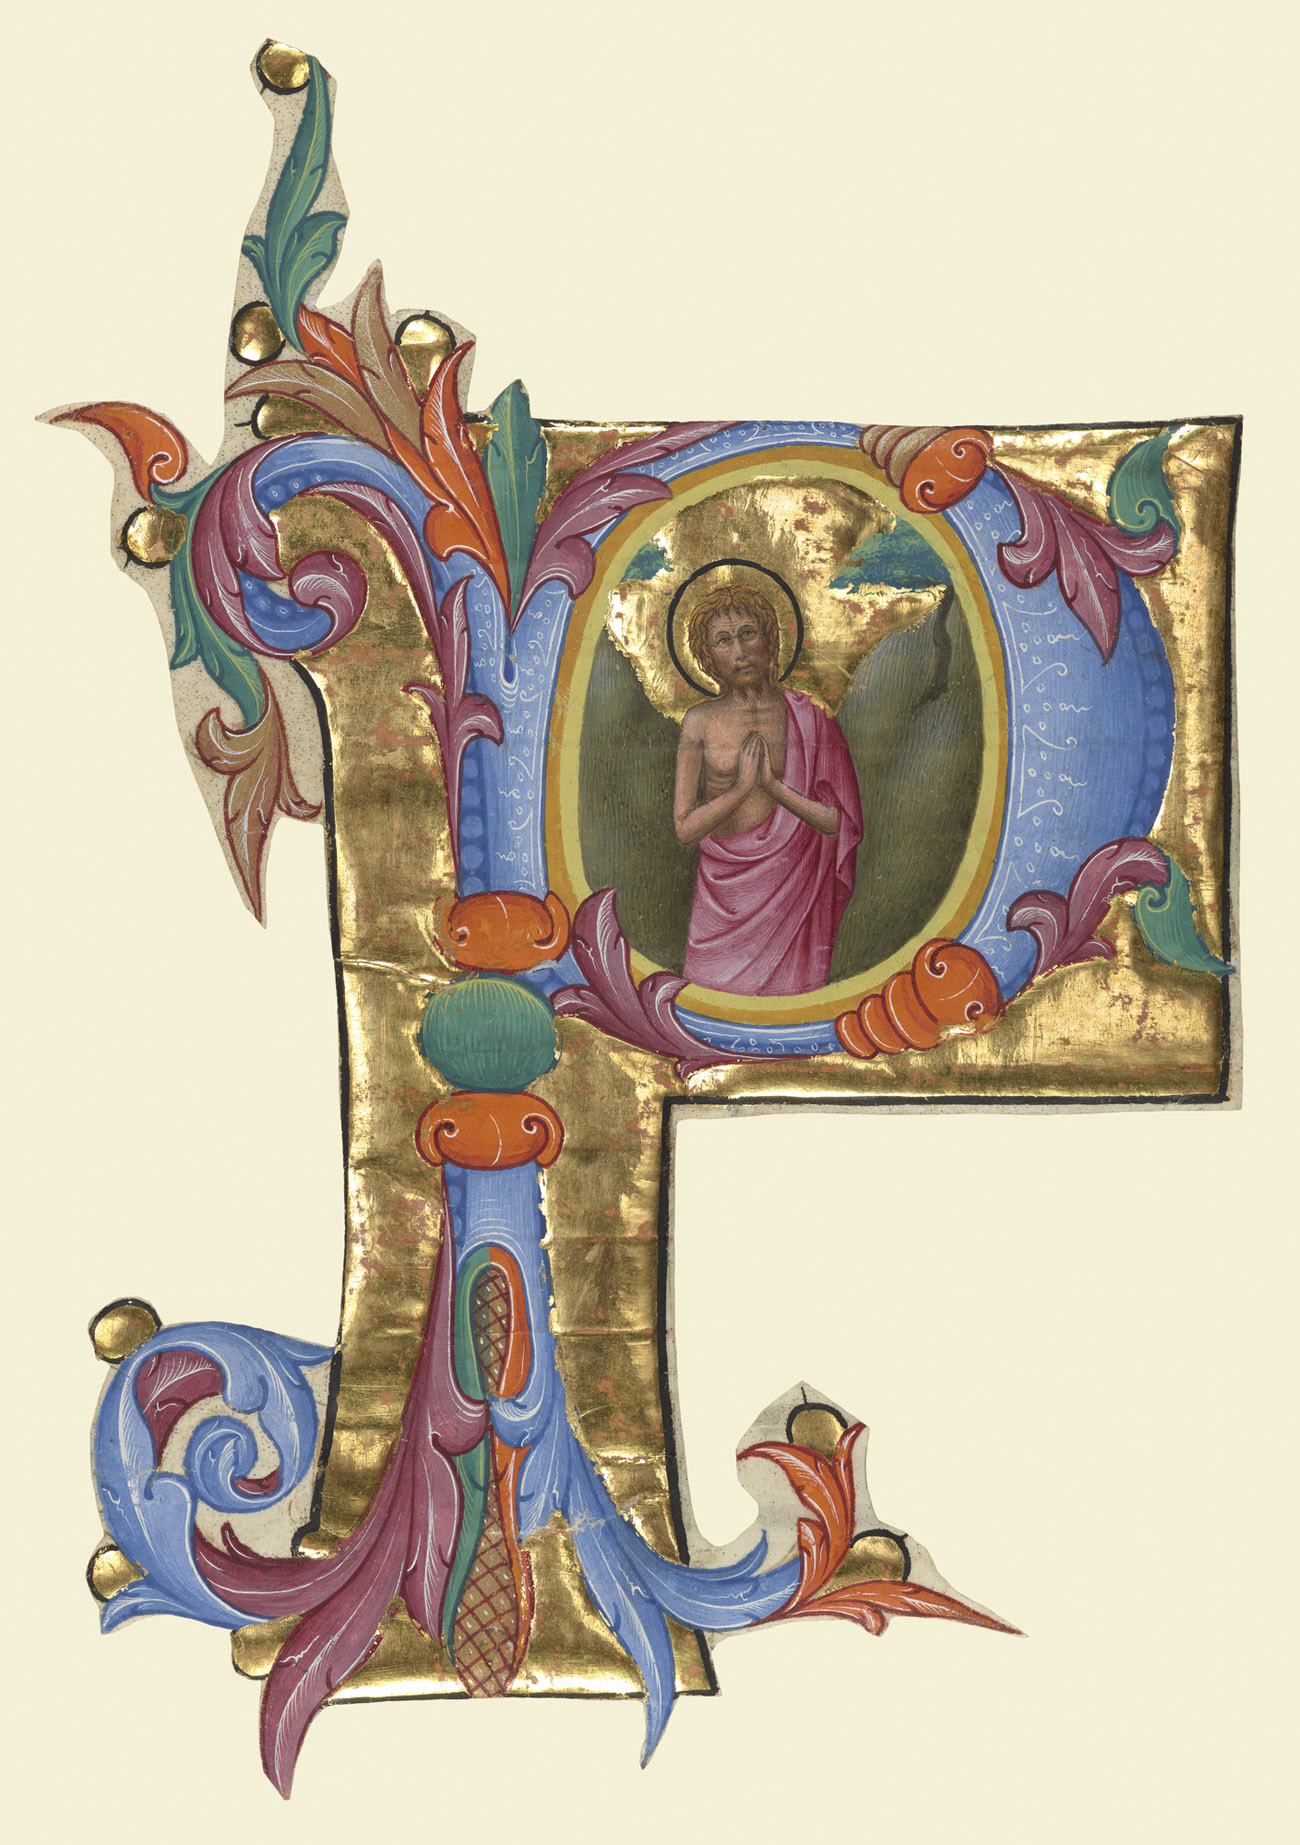 Cut out of its original page, a gilded and colorful P houses a depiction of Saint John the Baptist